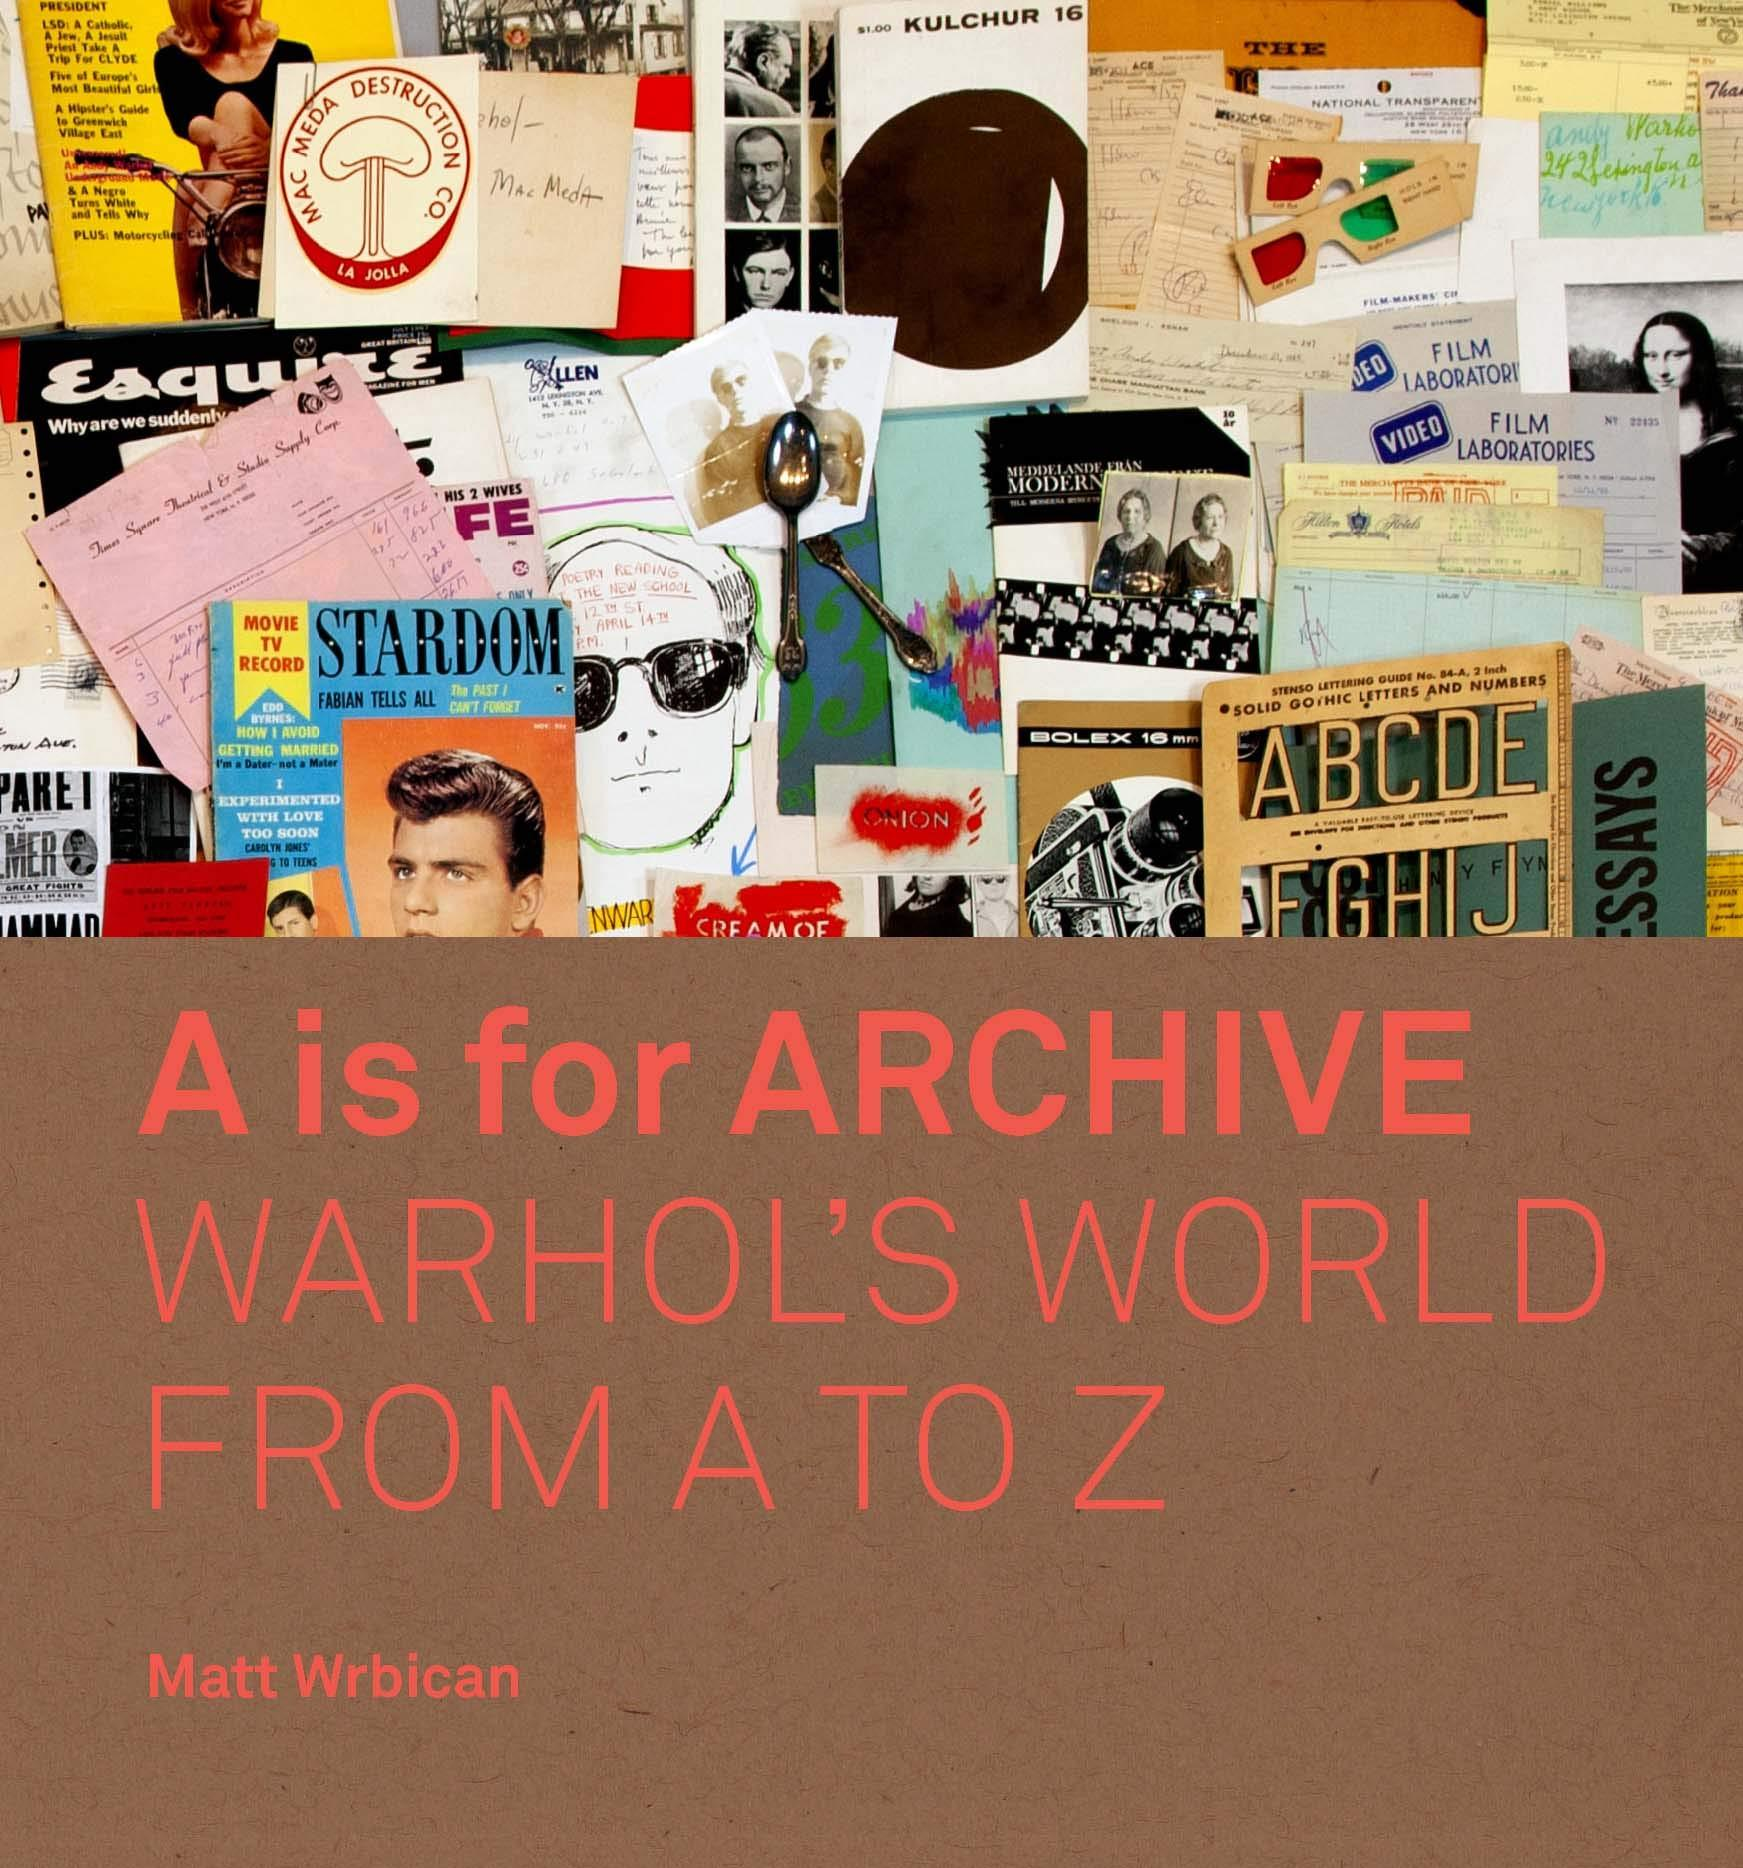 A IS FOR ARCHIVE - WHARHOL'S WORLD FROM A TO Z